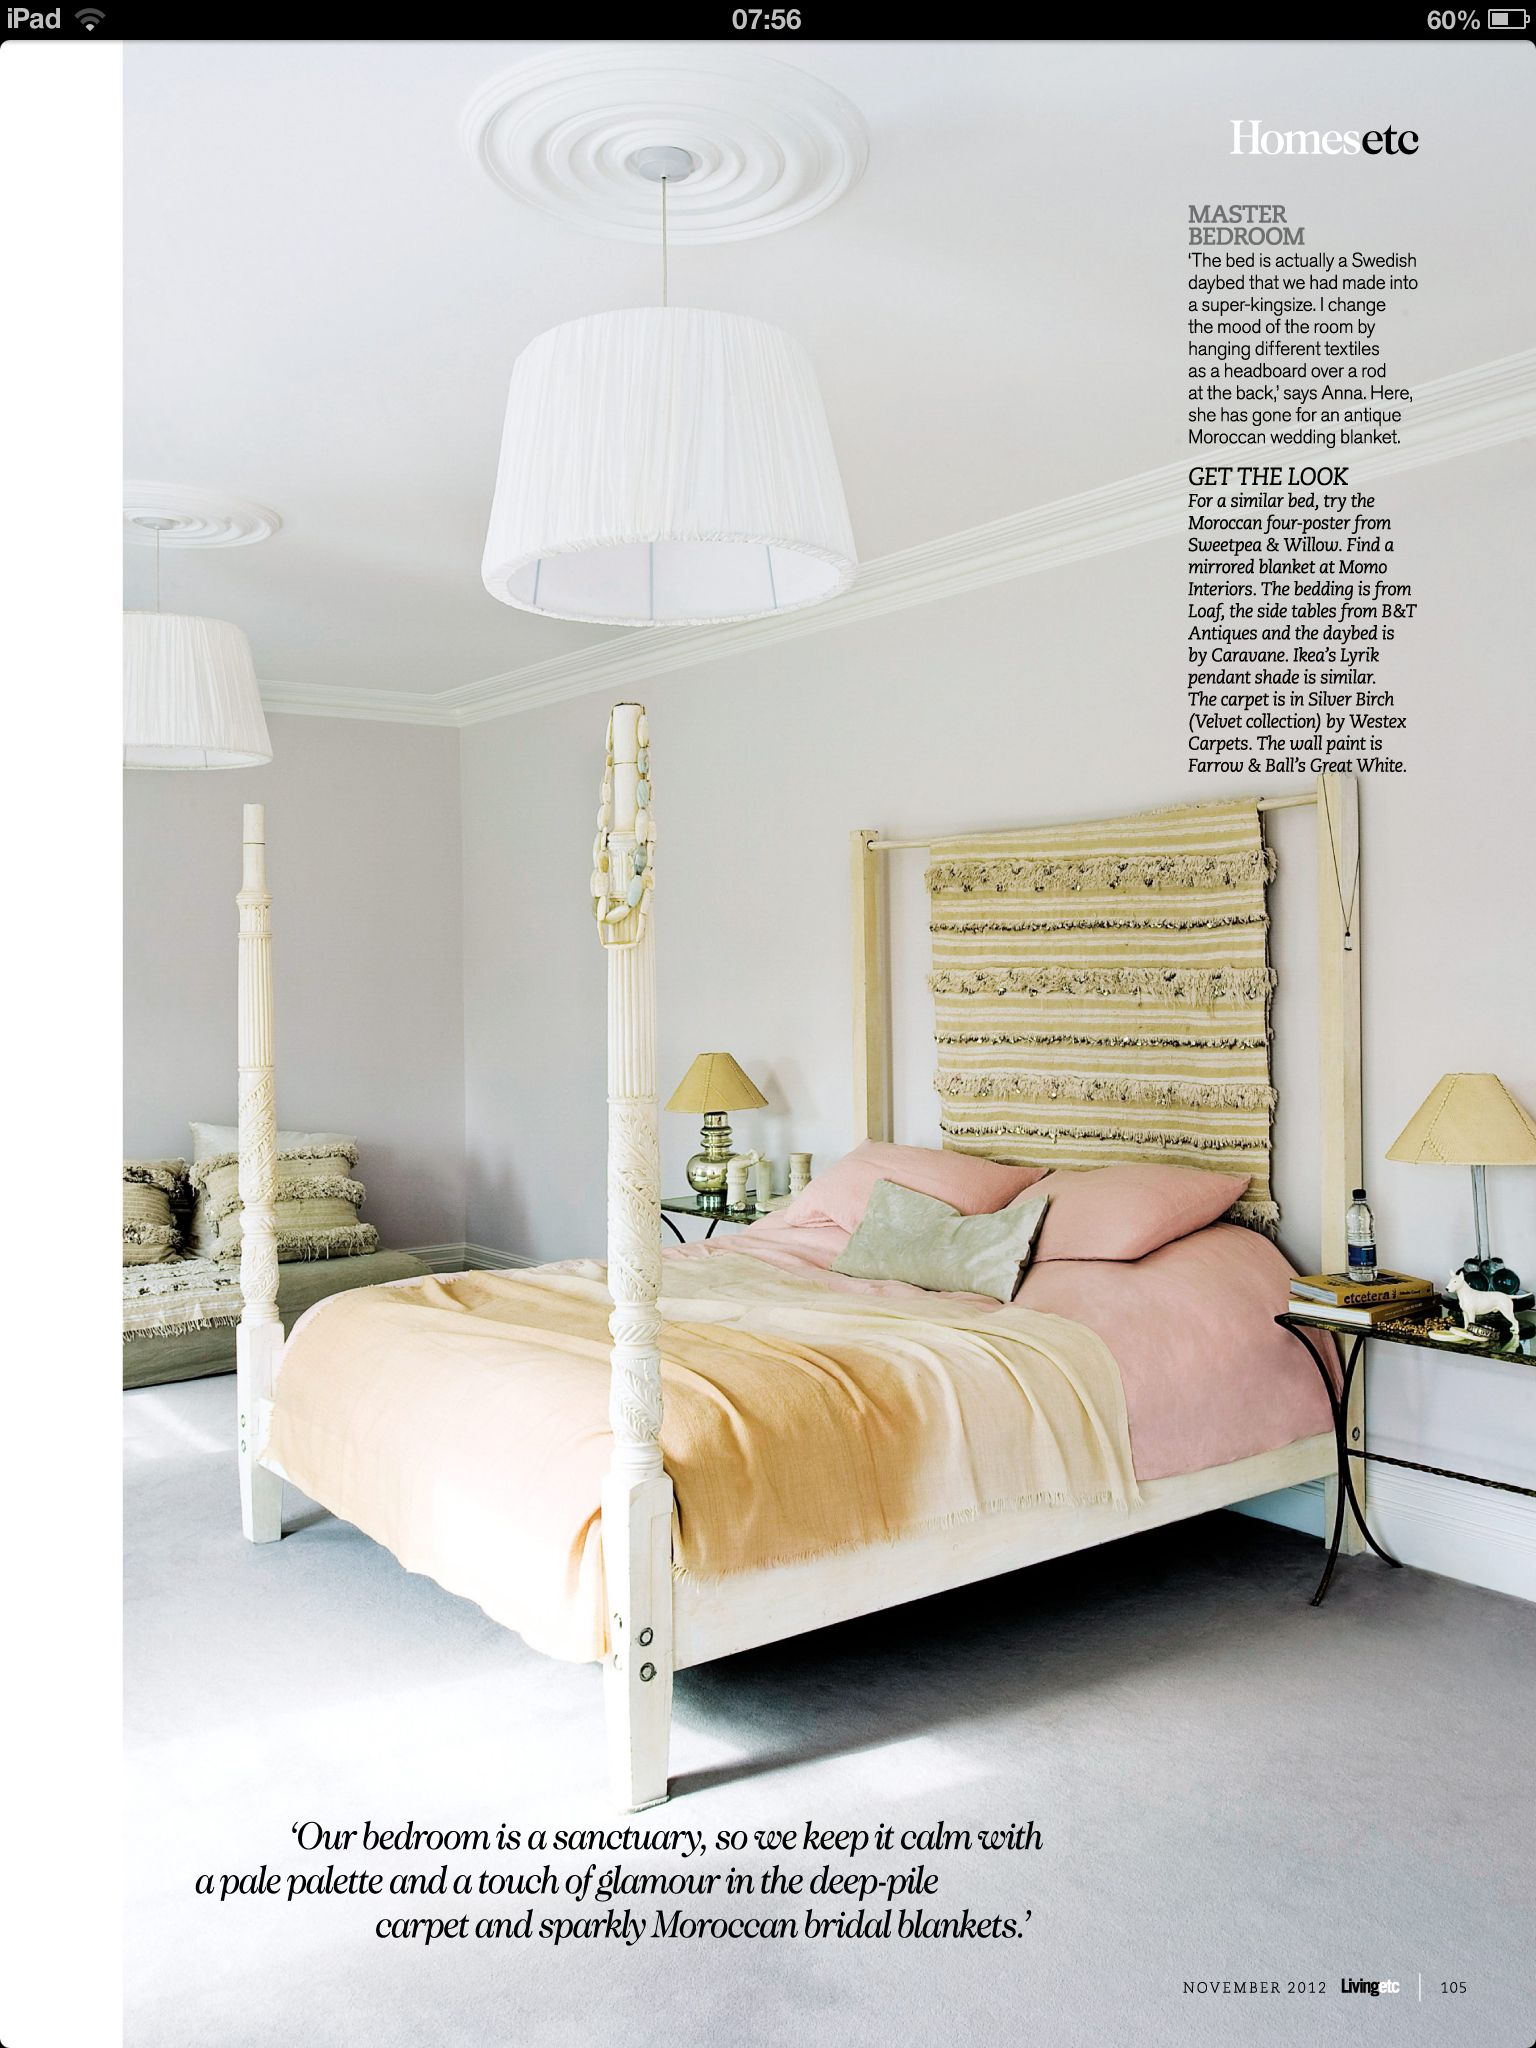 walls in great white farrow ball reno ideas and products pinterest farrow ball bed. Black Bedroom Furniture Sets. Home Design Ideas